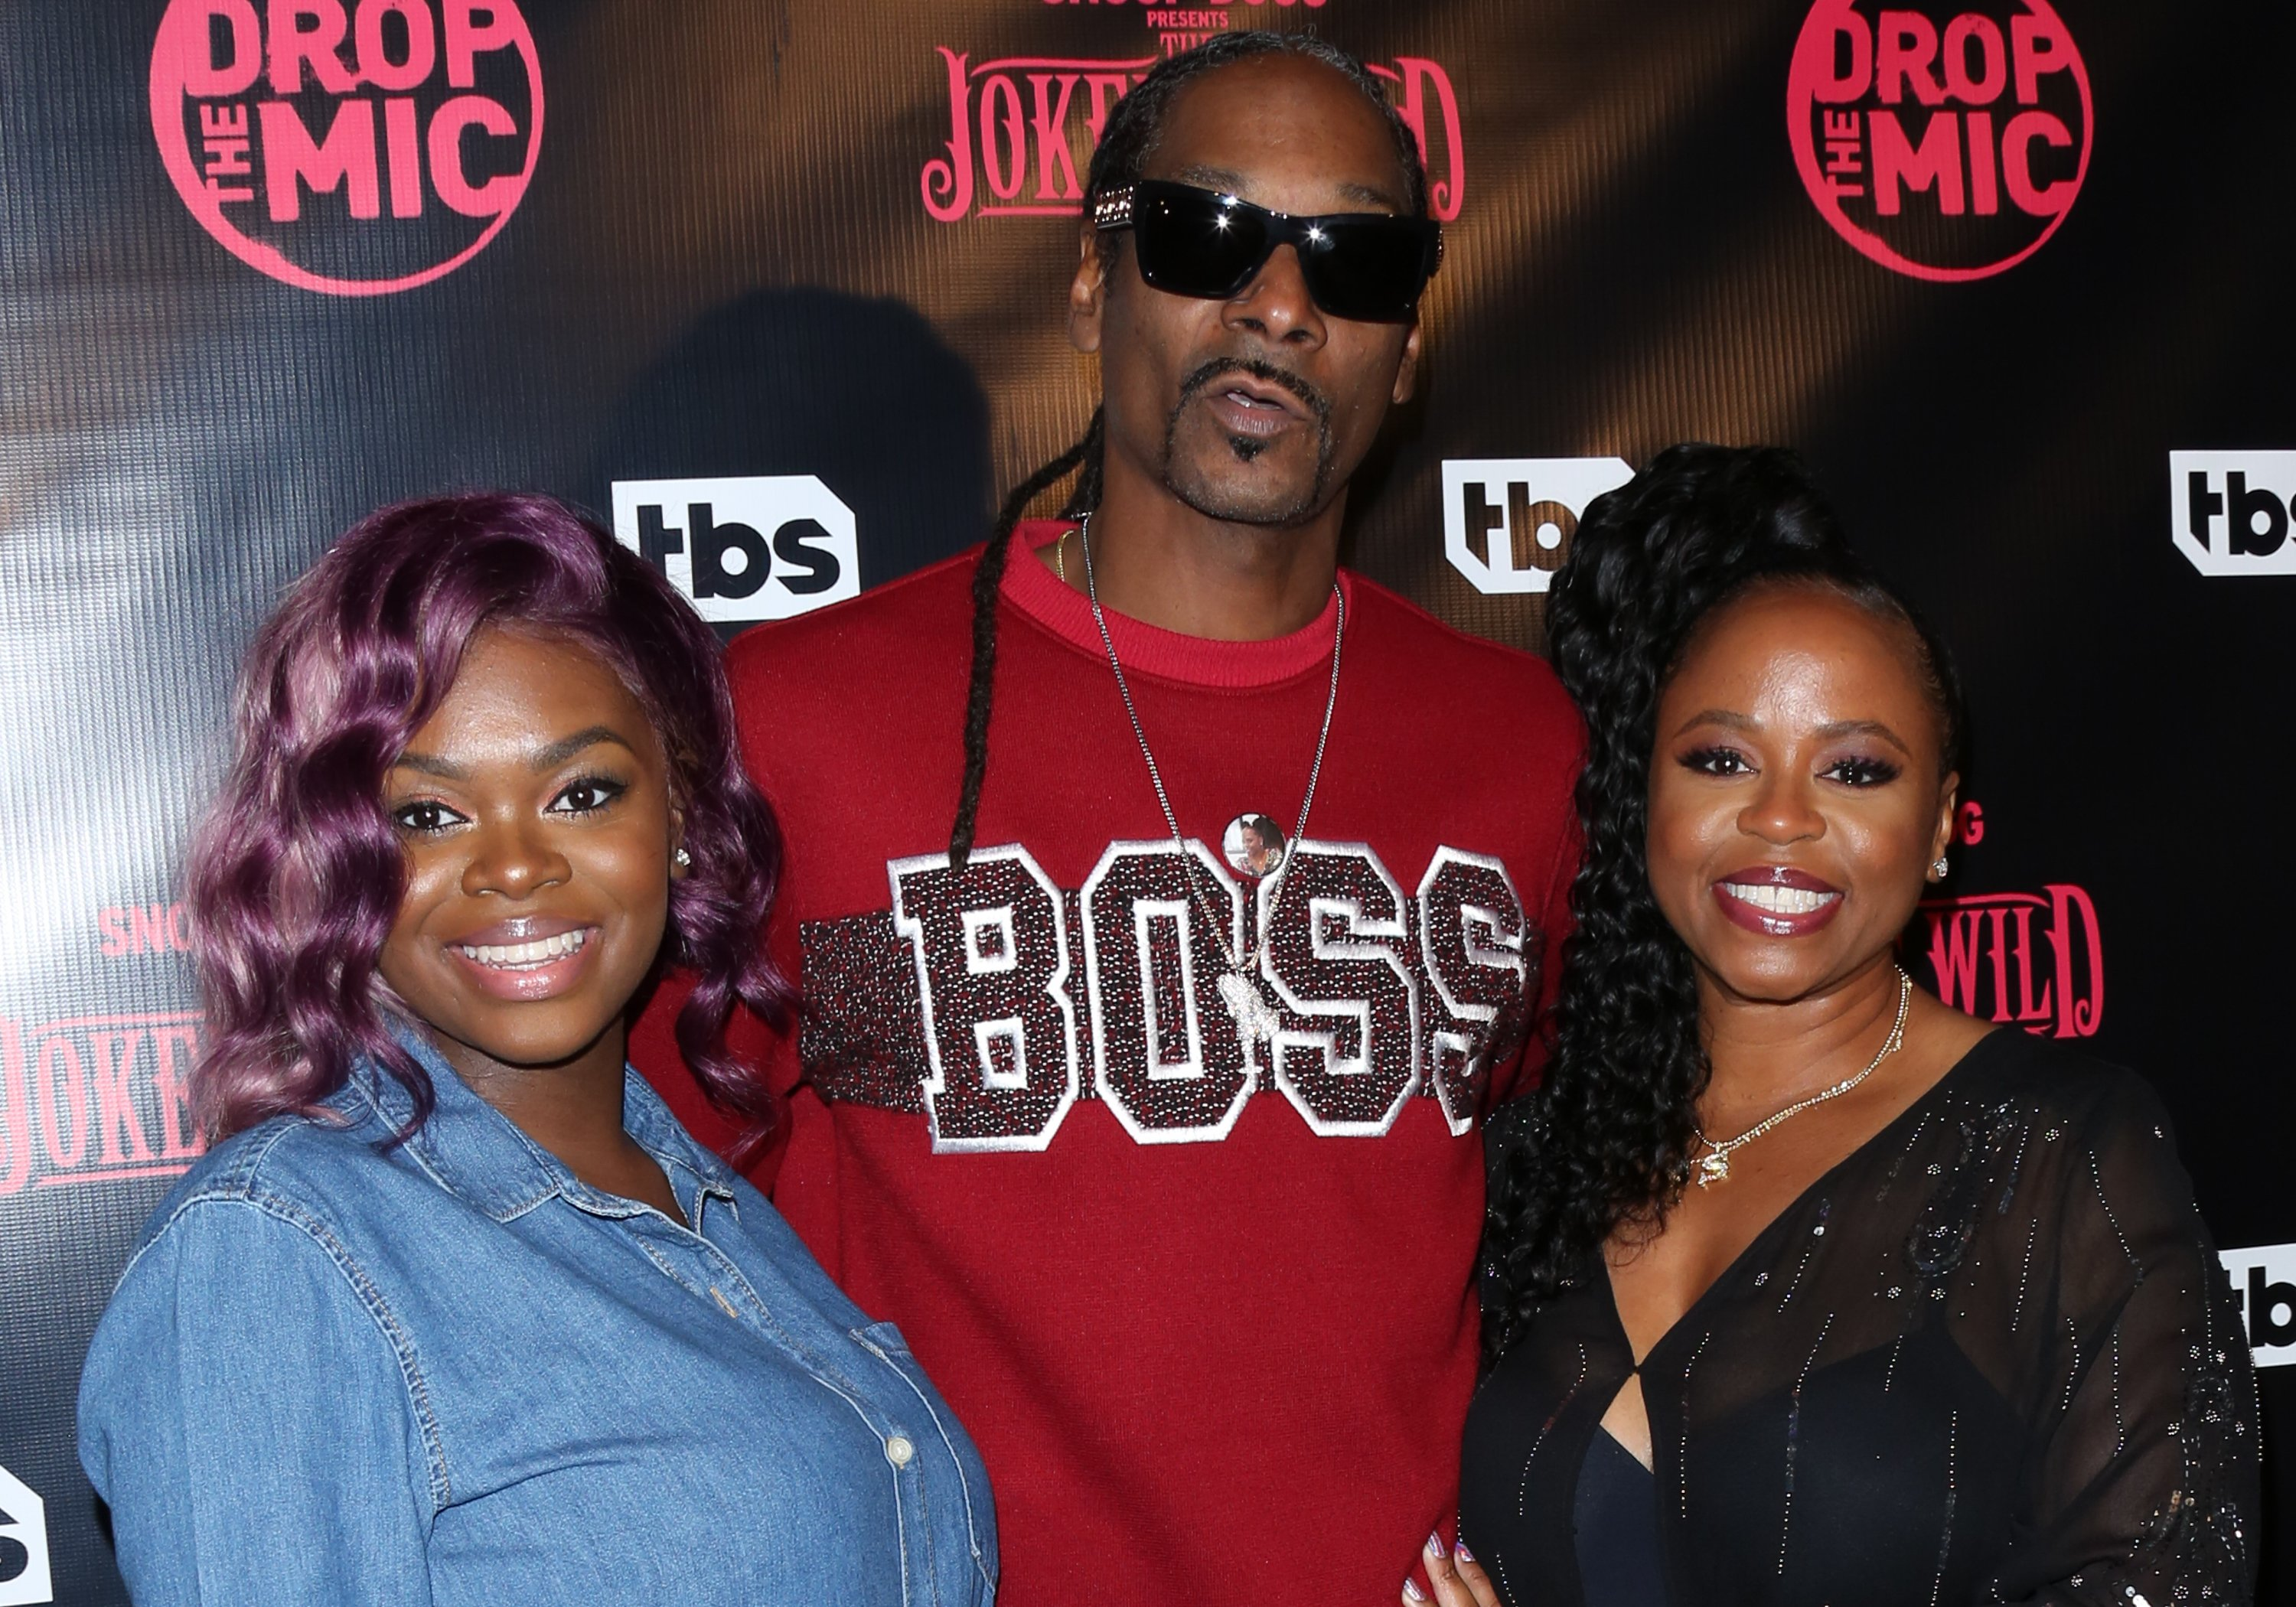 """Cori Broadus, Snoop Dogg, and Shante Broadus at TBS's """"Drop The Mic"""" and """"The Joker's Wild"""" premiere on October 11, 2017. 